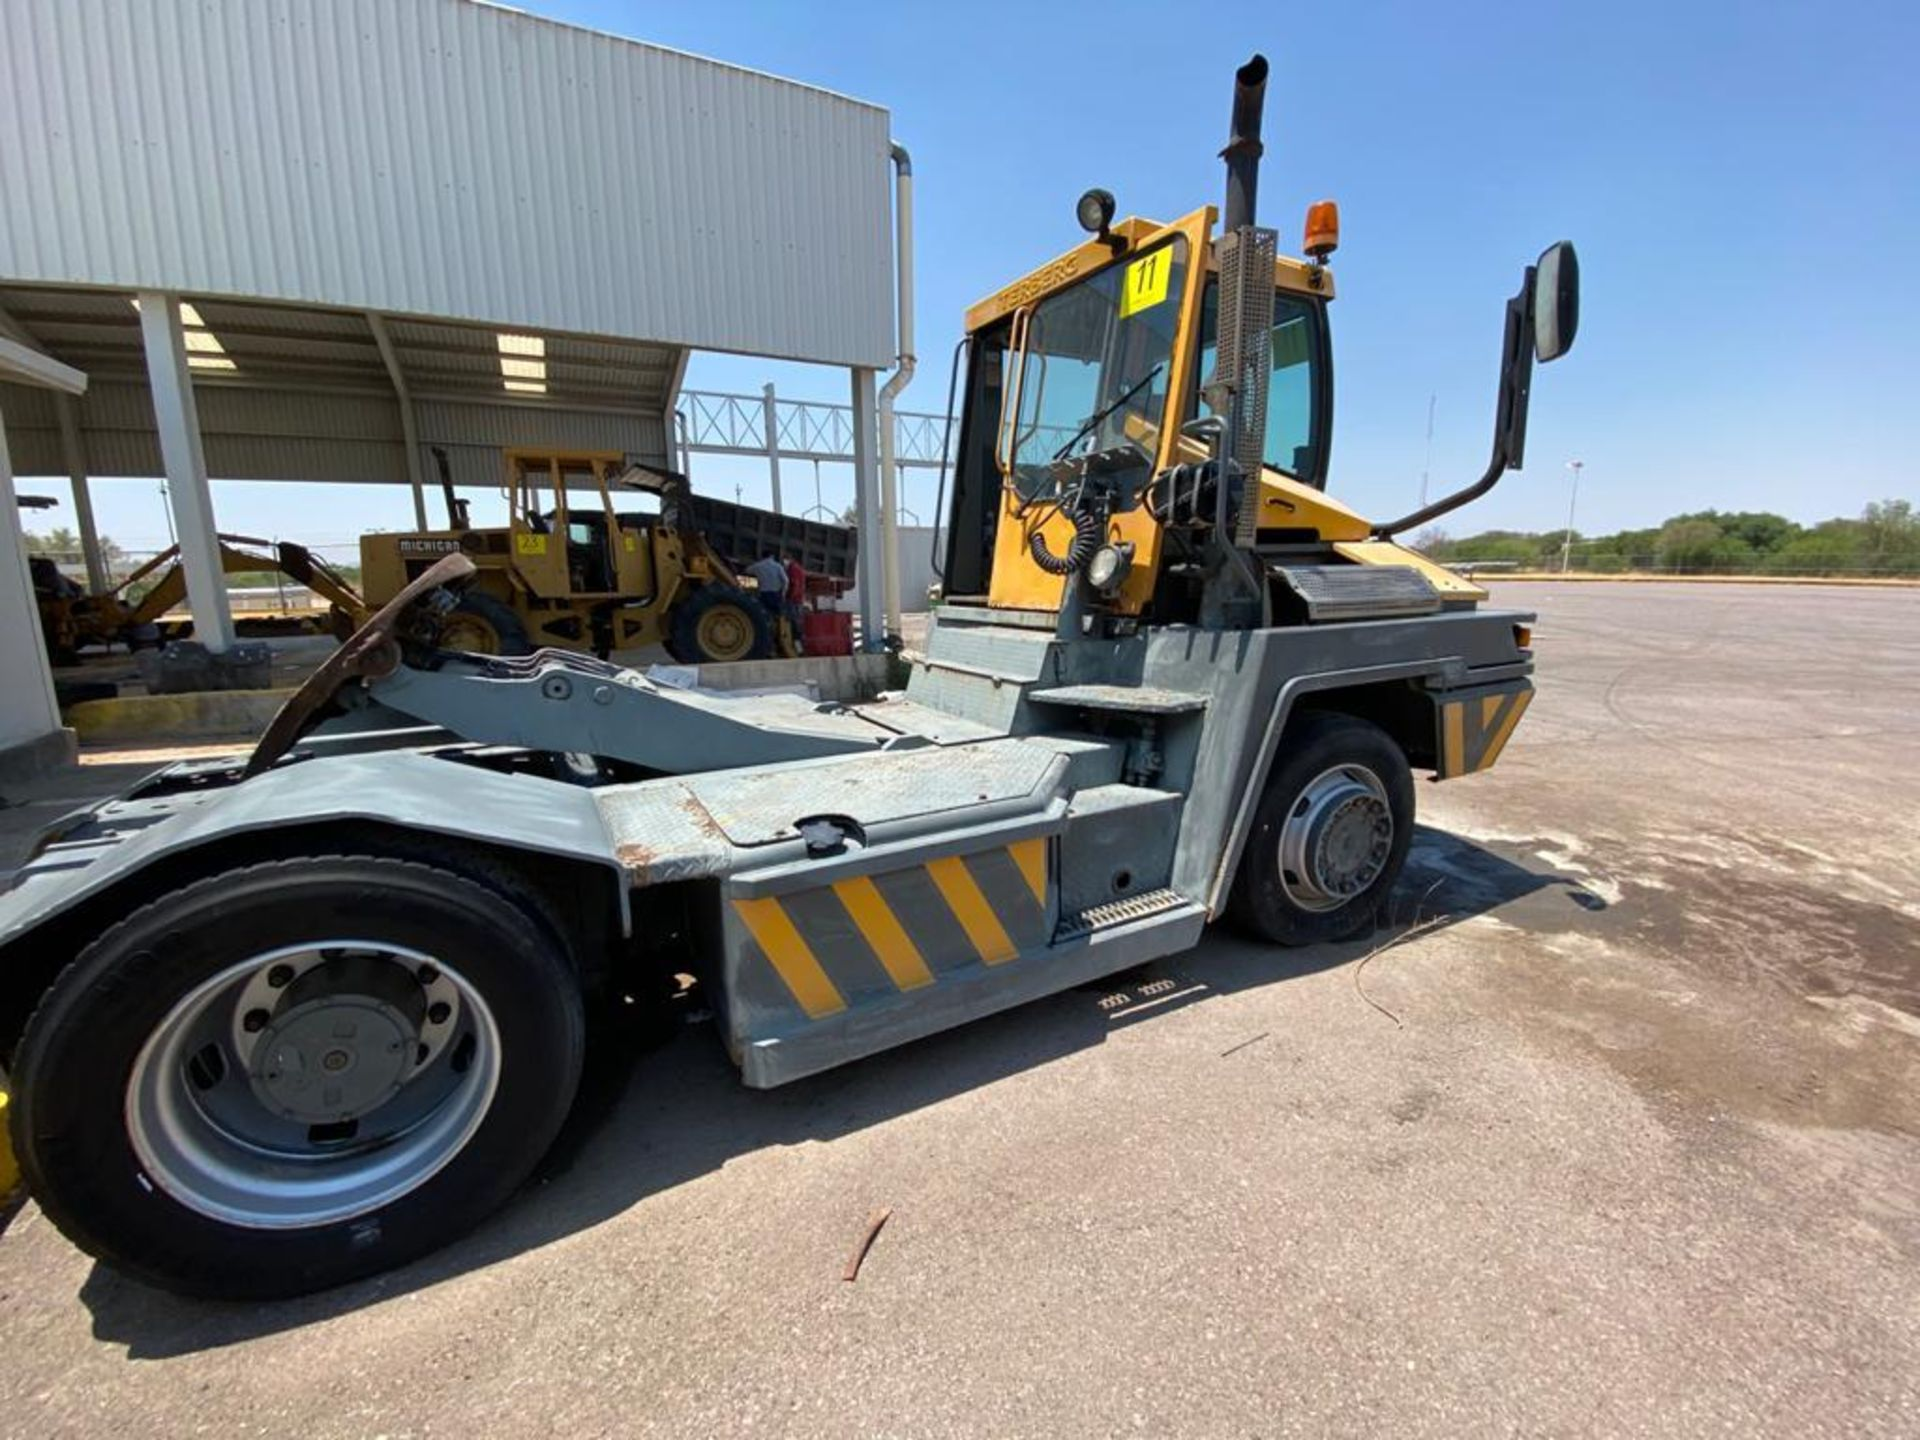 Terberg Capacity 2002 Terminal Tractor, automatic transmission - Image 16 of 57